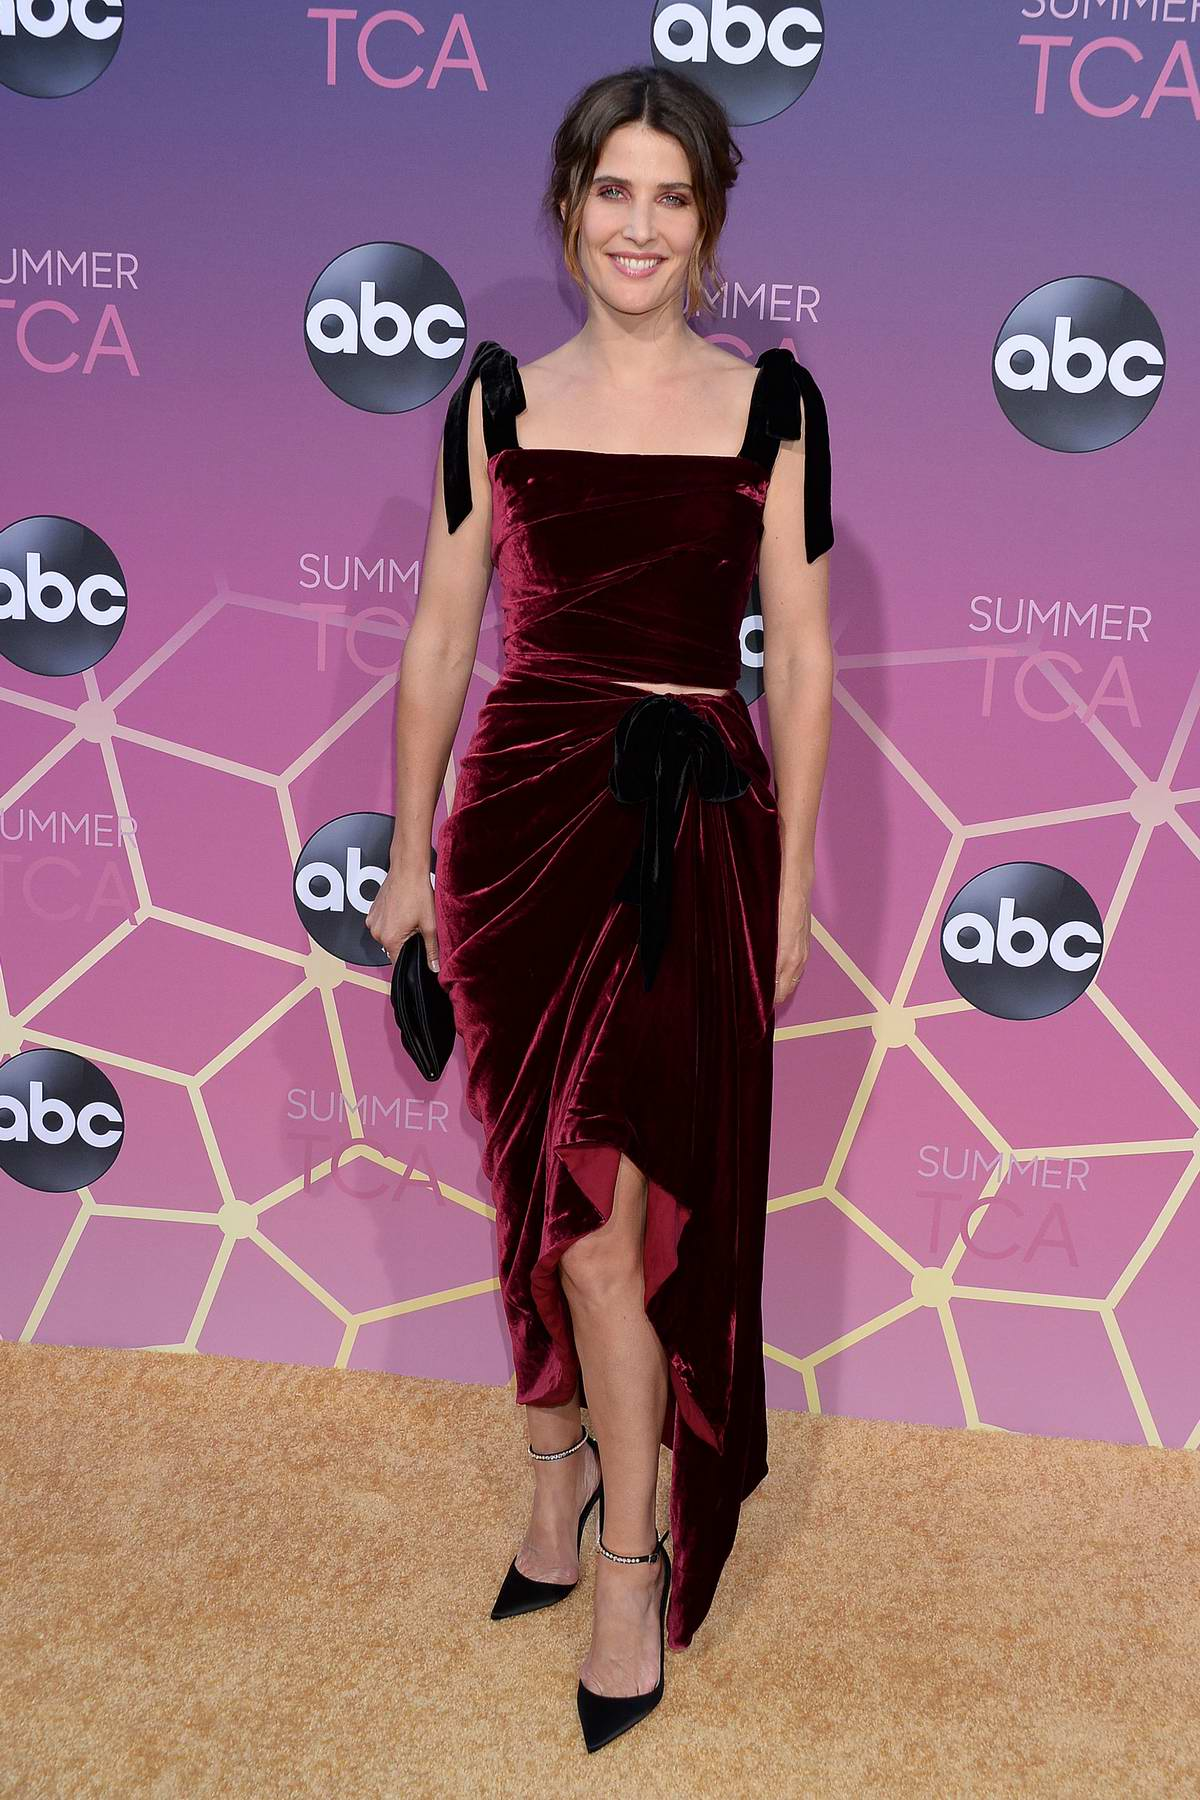 Cobie Smulders attends the ABC's 2019 TCA Summer Press Tour at Soho House in Beverly Hills, Los Angeles